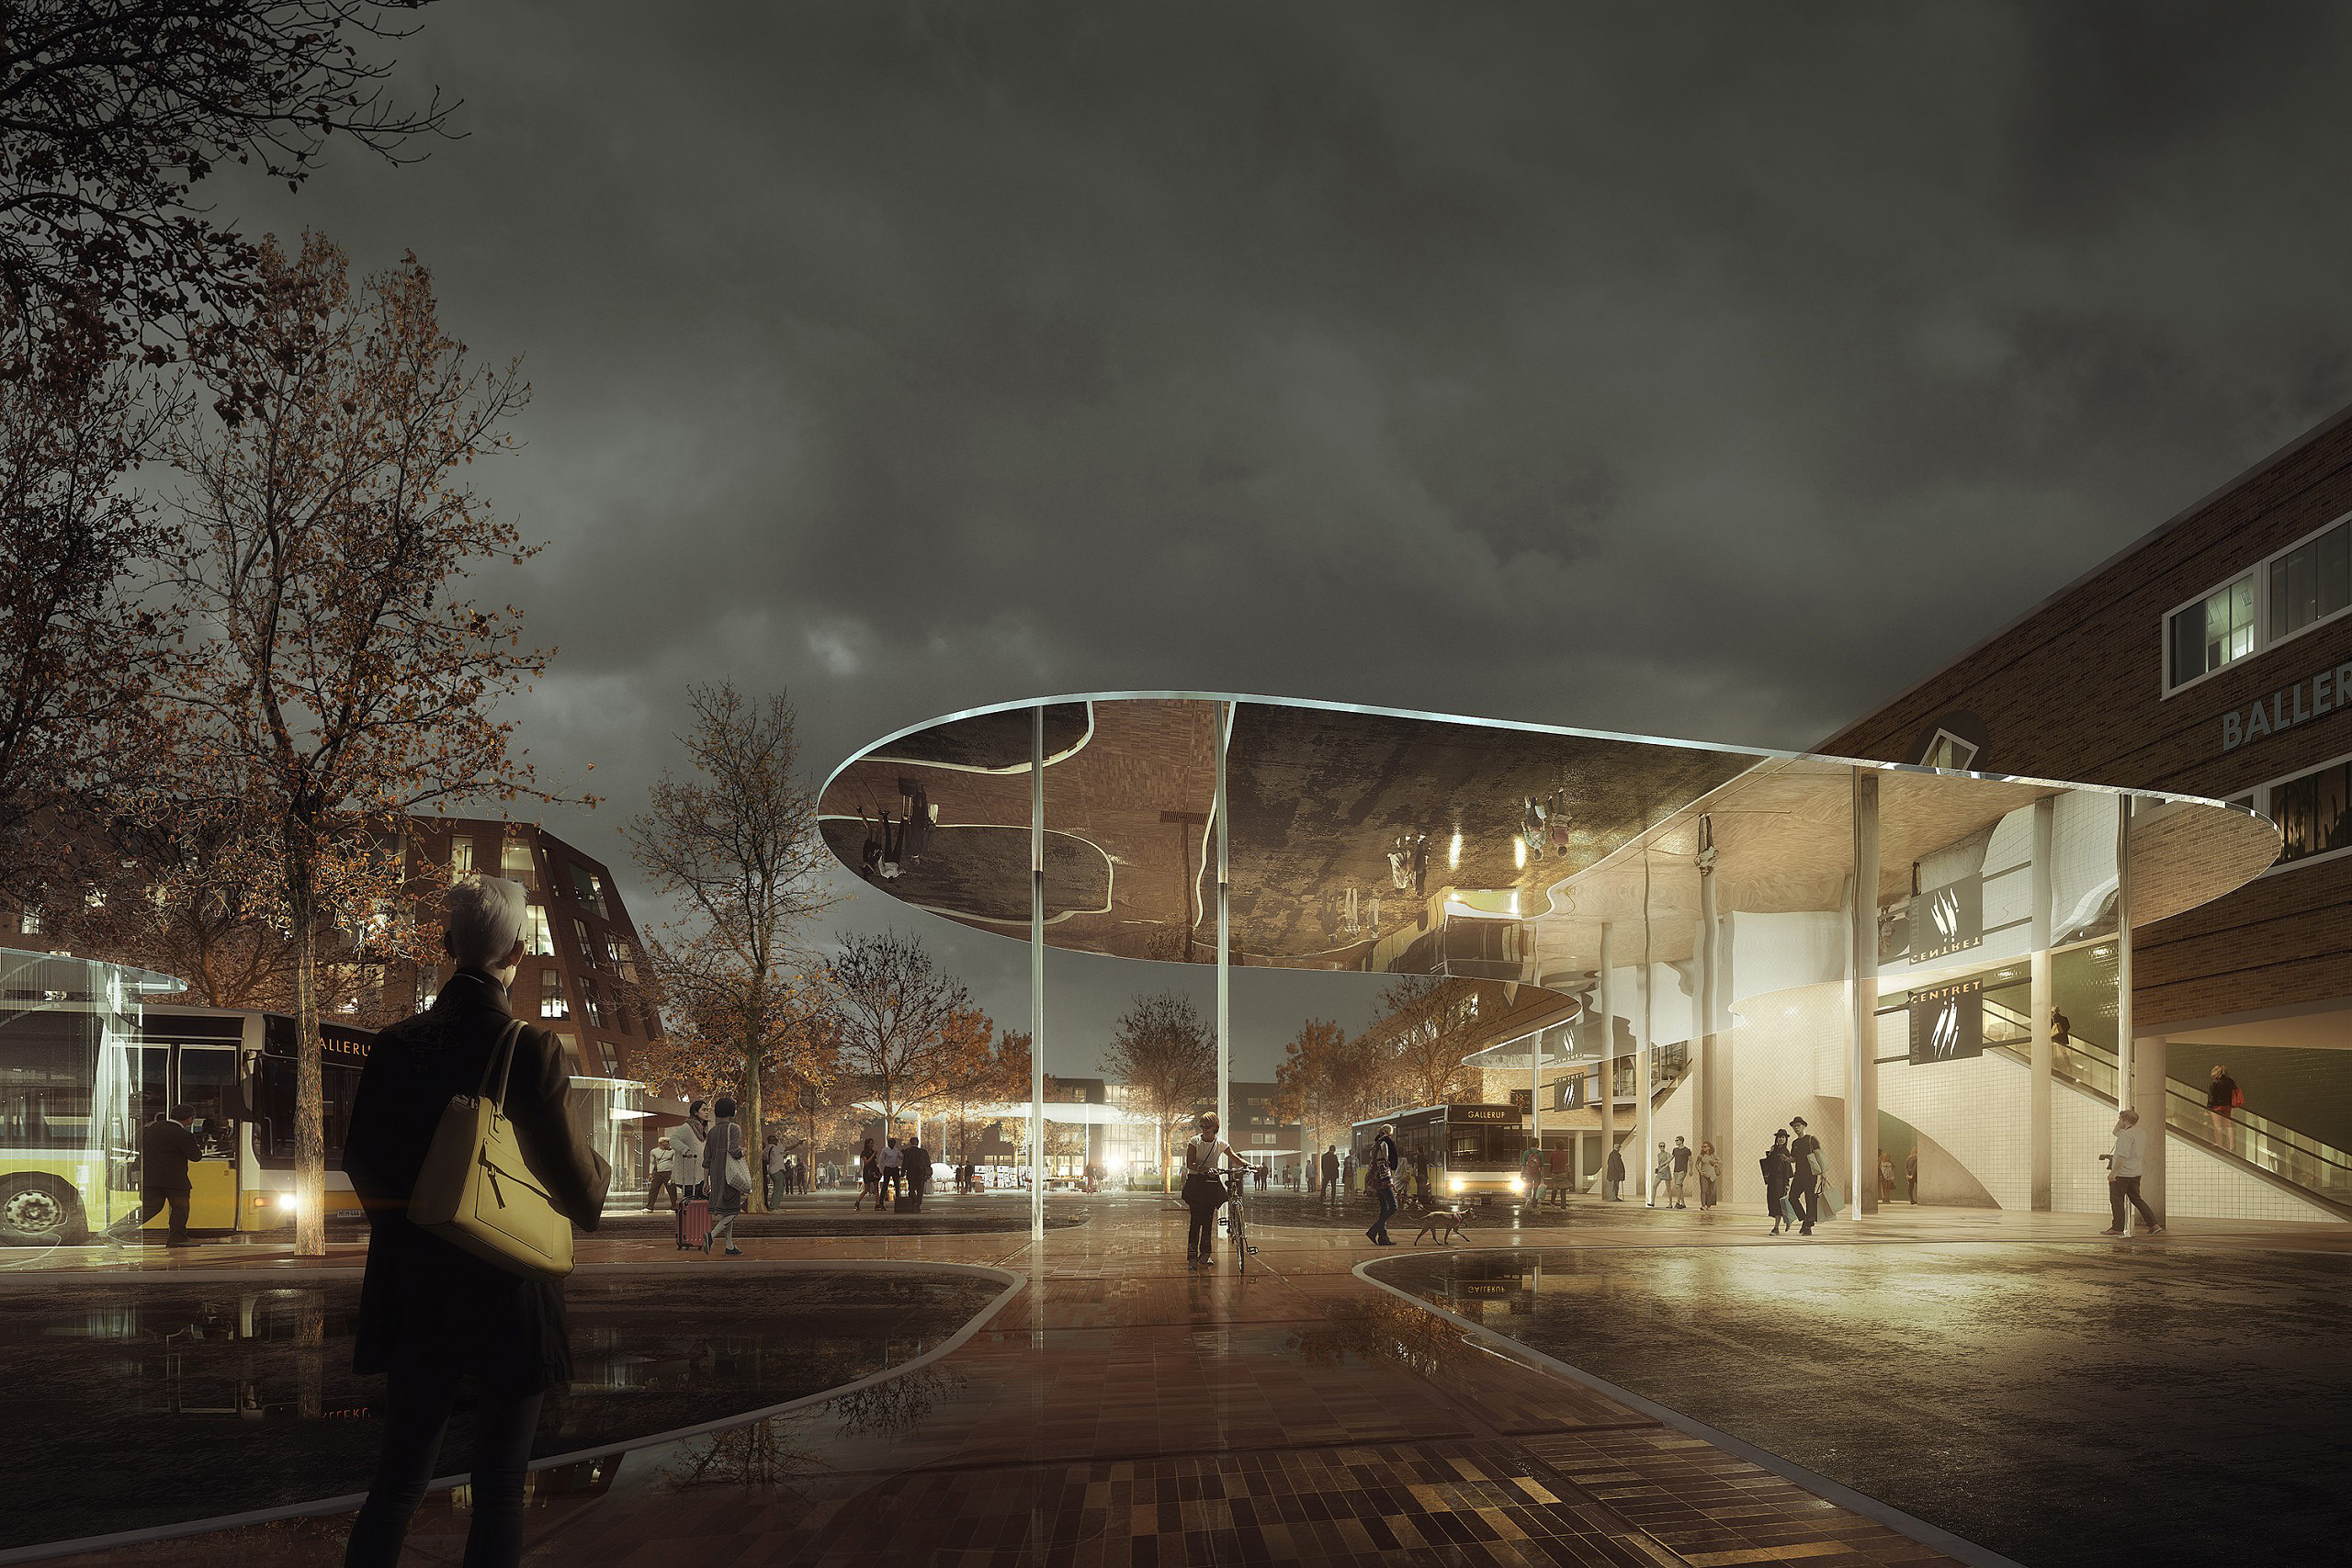 Architecture competition visualisation: Mirror roof reflecting the drop off area at the Ballerup Bus terminal